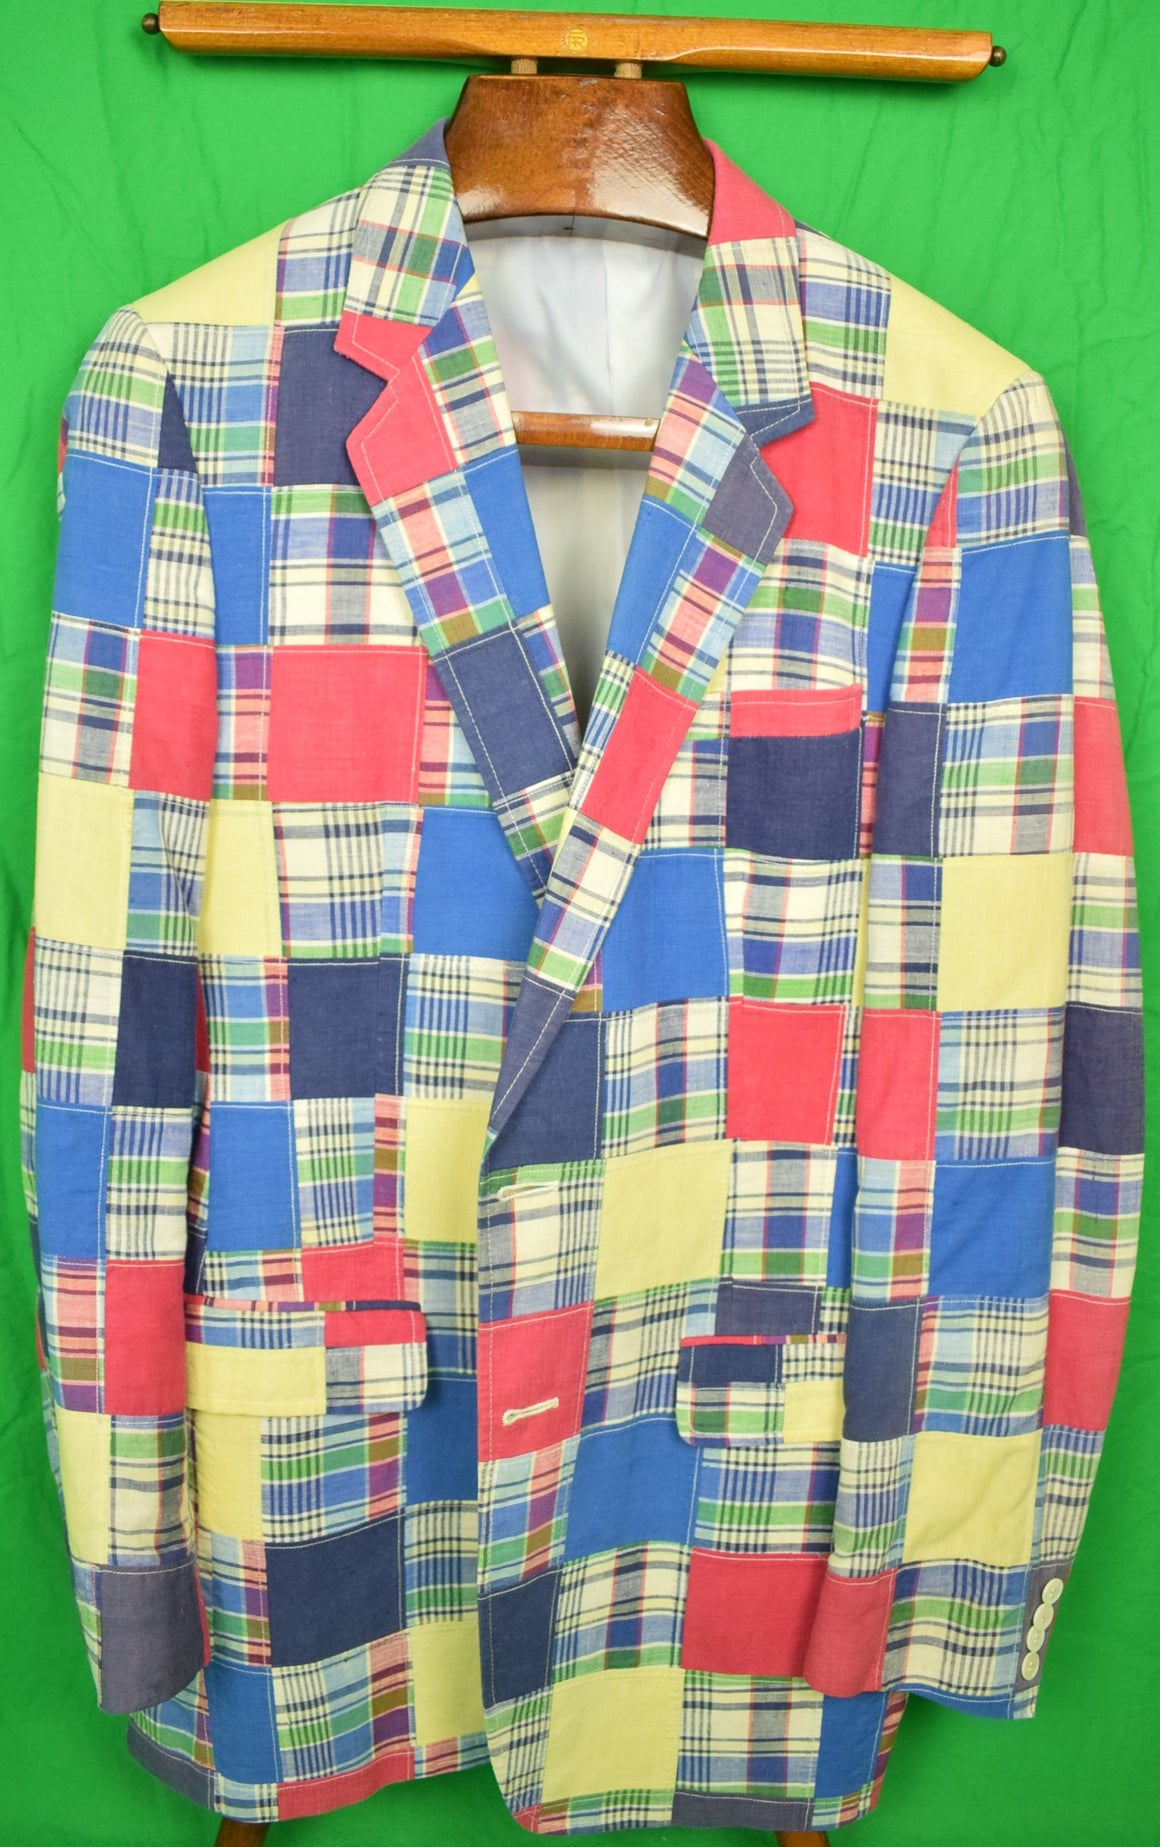 Patch Madras Gent's Sport Jacket Sz: 43R